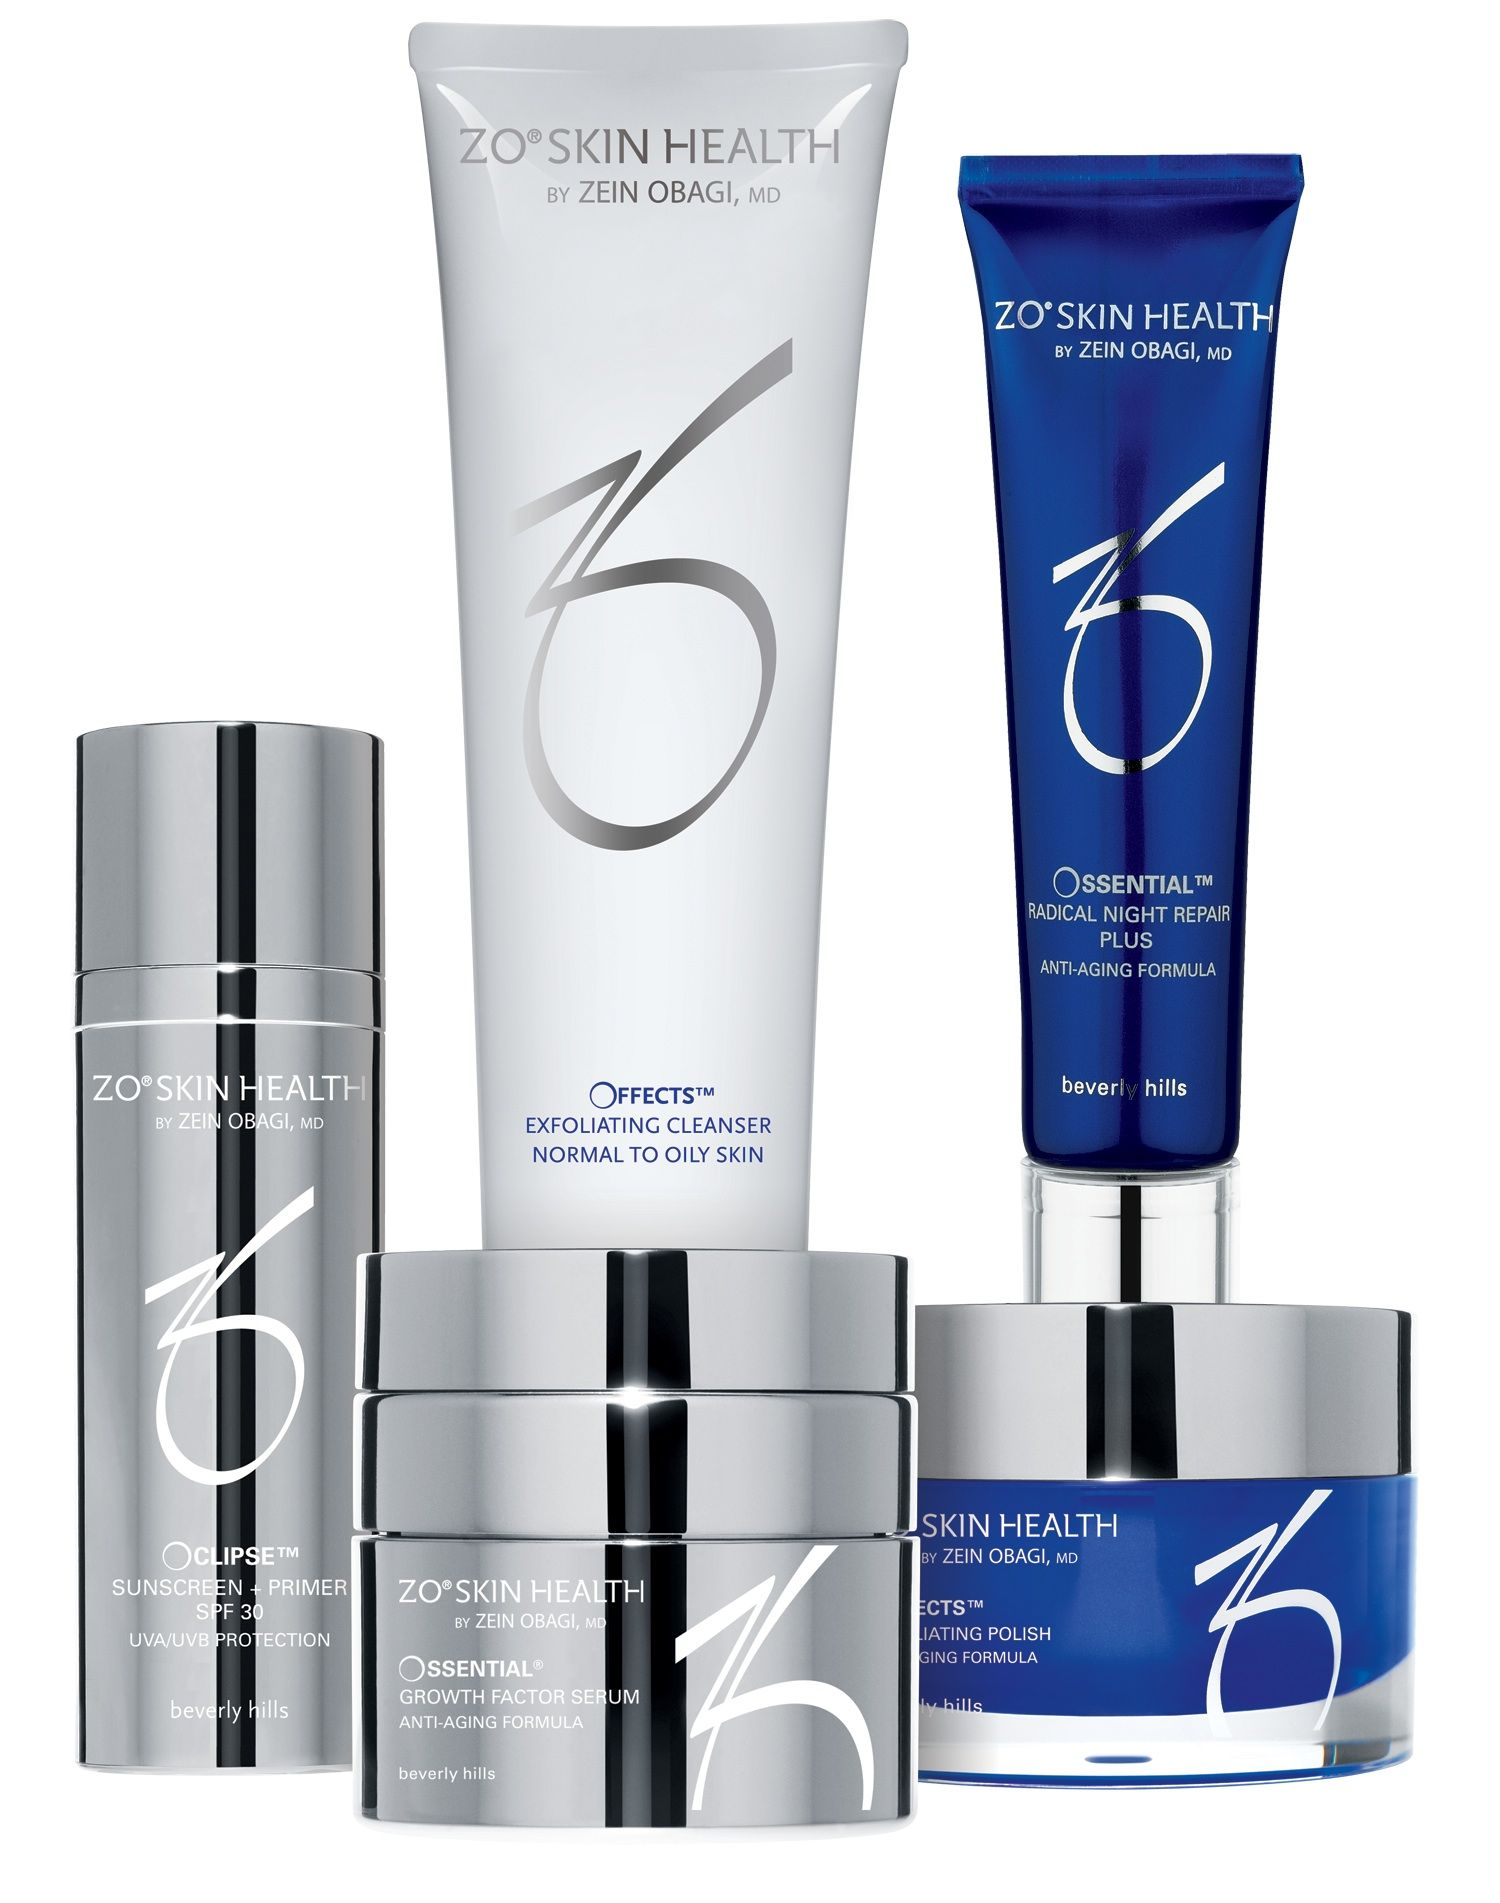 Zo Skin Health Products Chelsea Face And Body Skin Health Professional Skin Care Products Skin Care